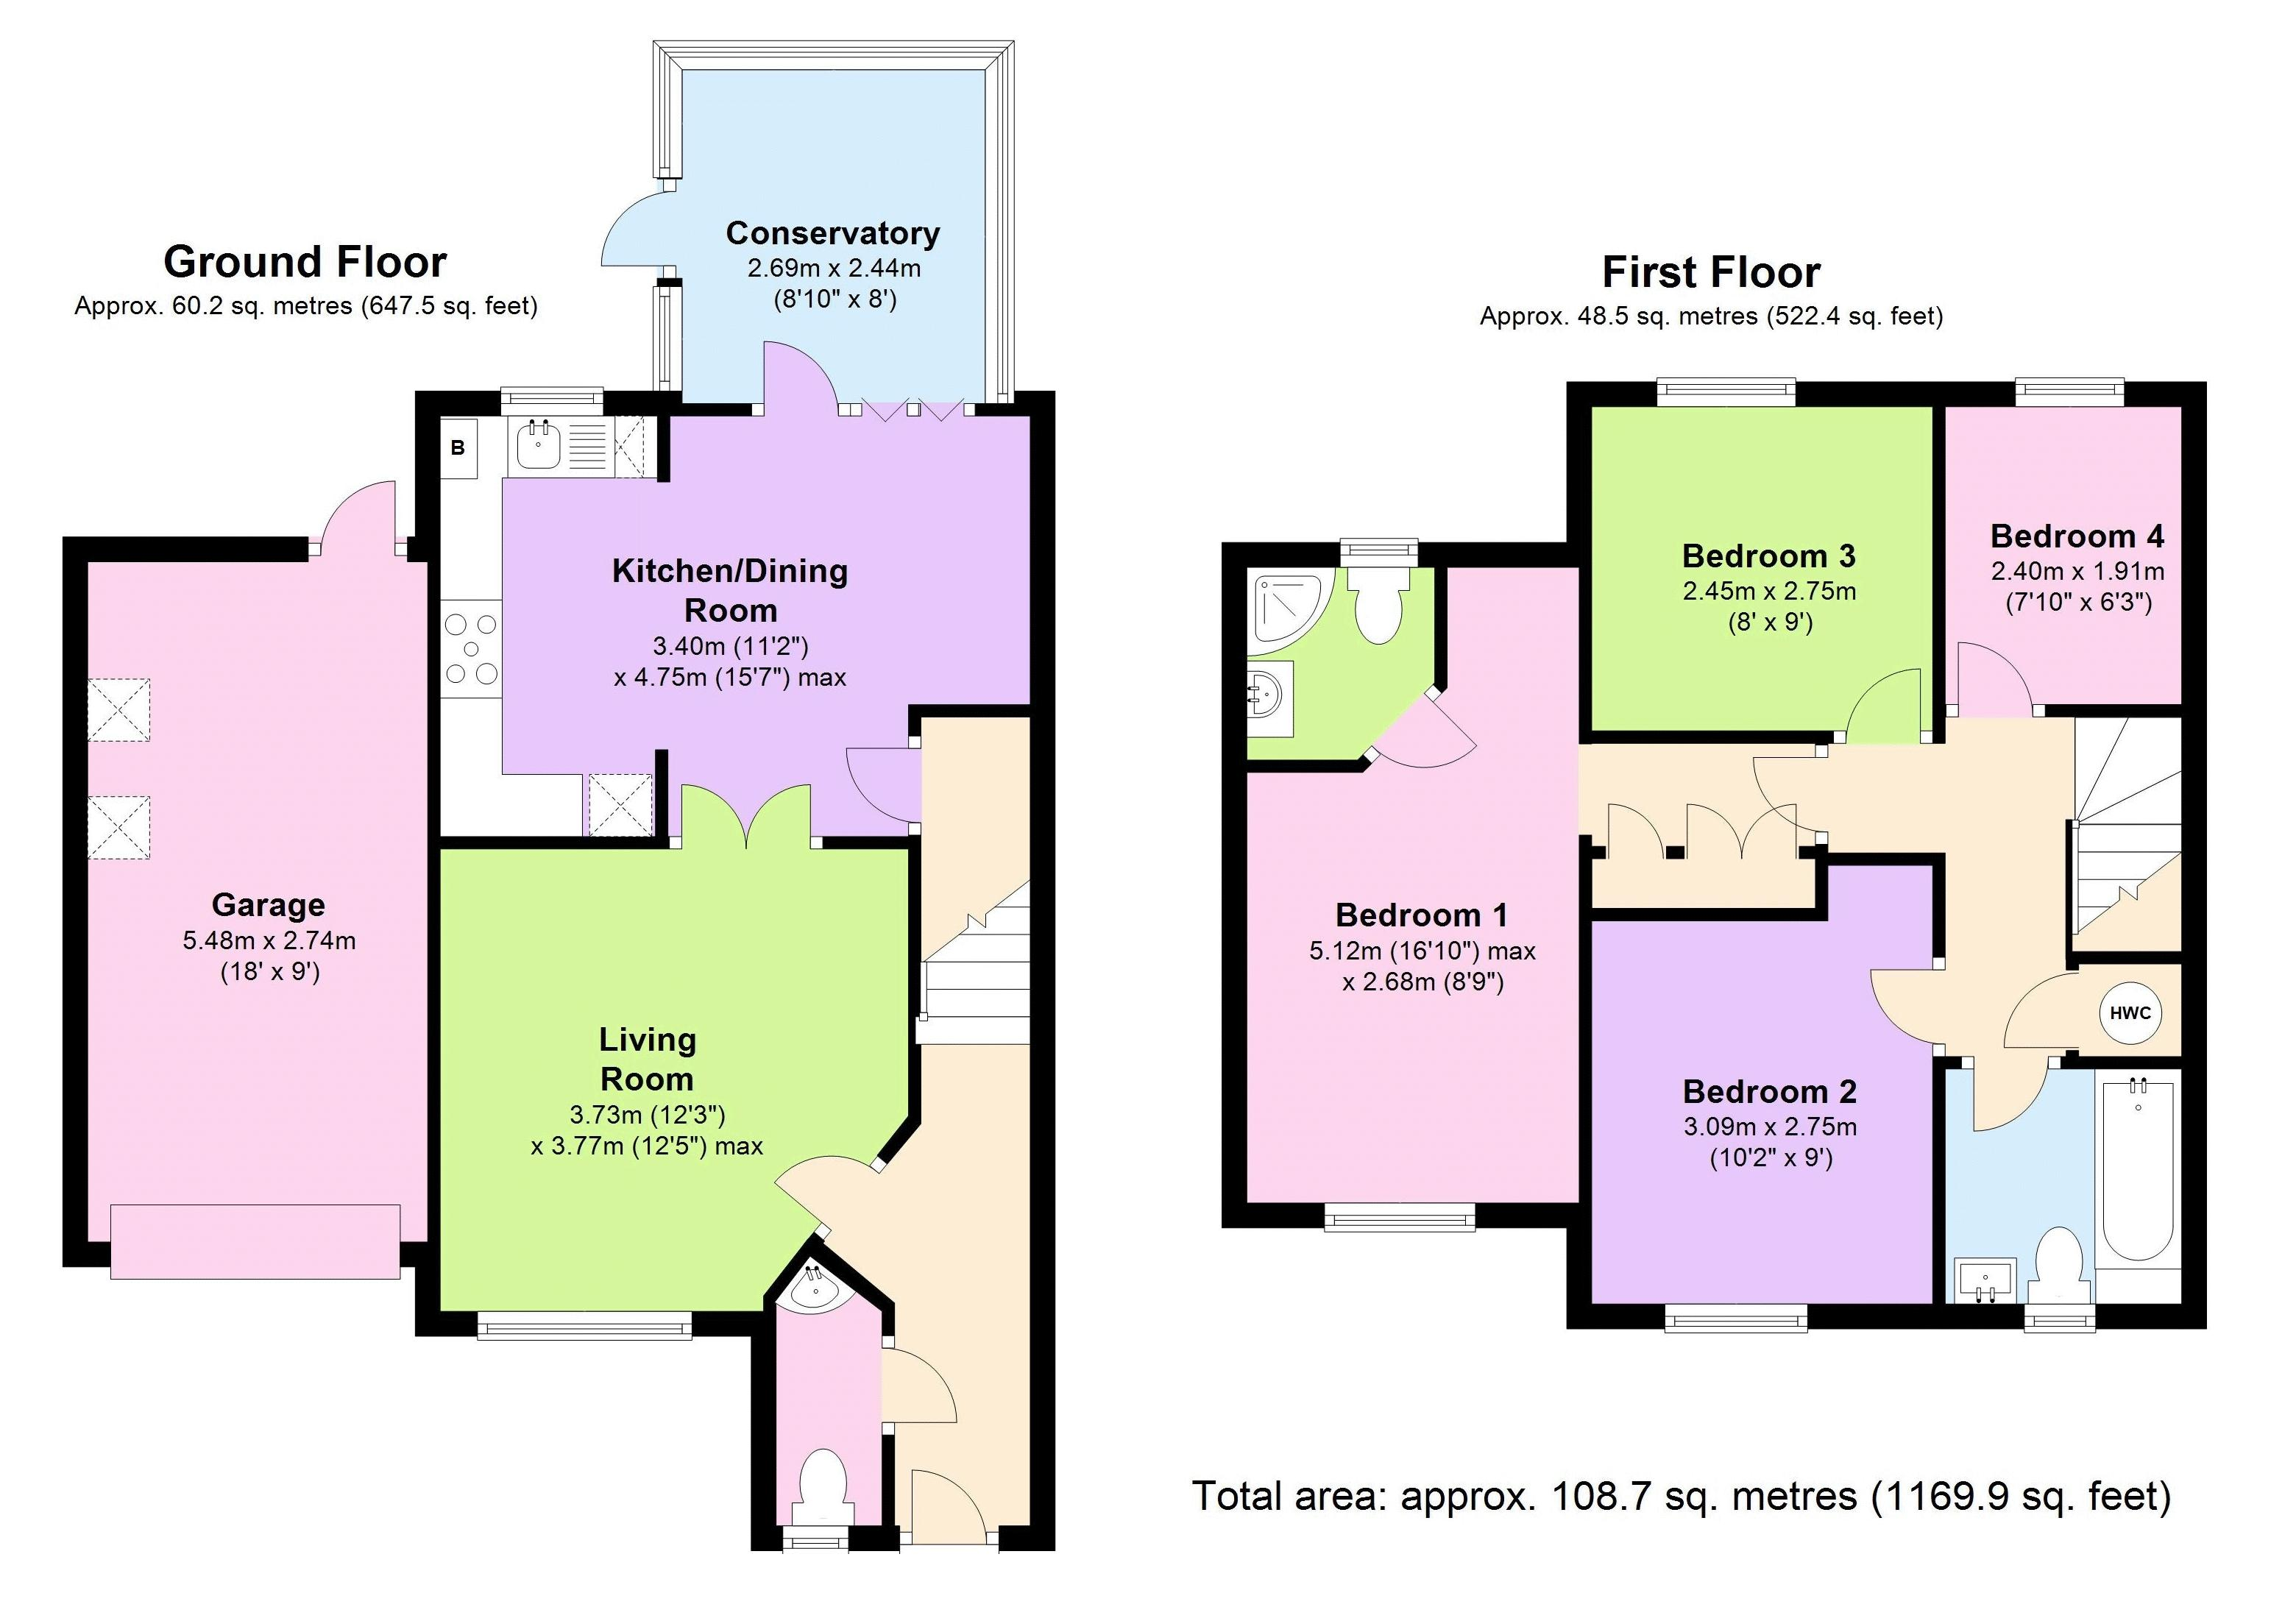 4 bedroom house for sale in henlow for How much is a bathroom worth on an appraisal